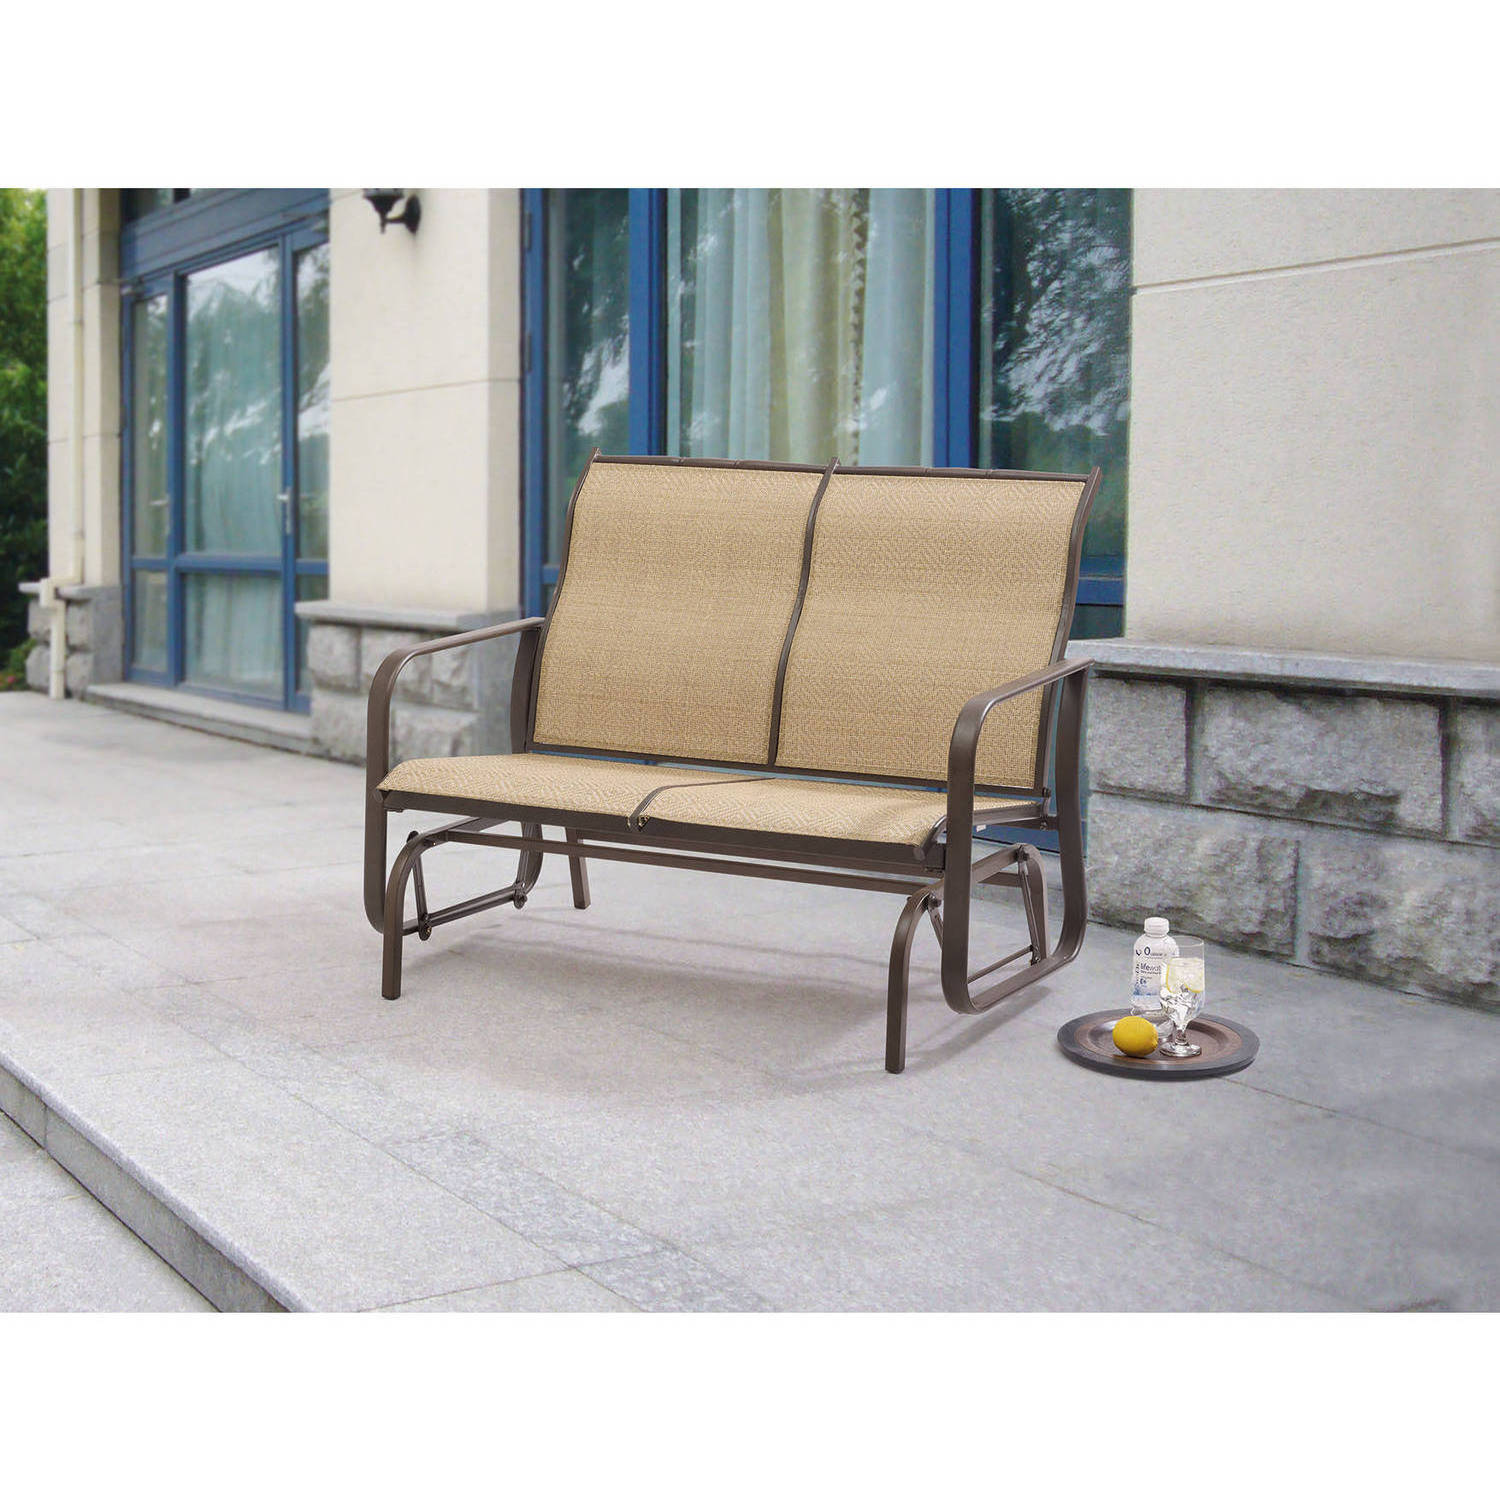 2 Seat Sling Glider Tan Bench Chair Swing Outdoor Patio Porch Rocker